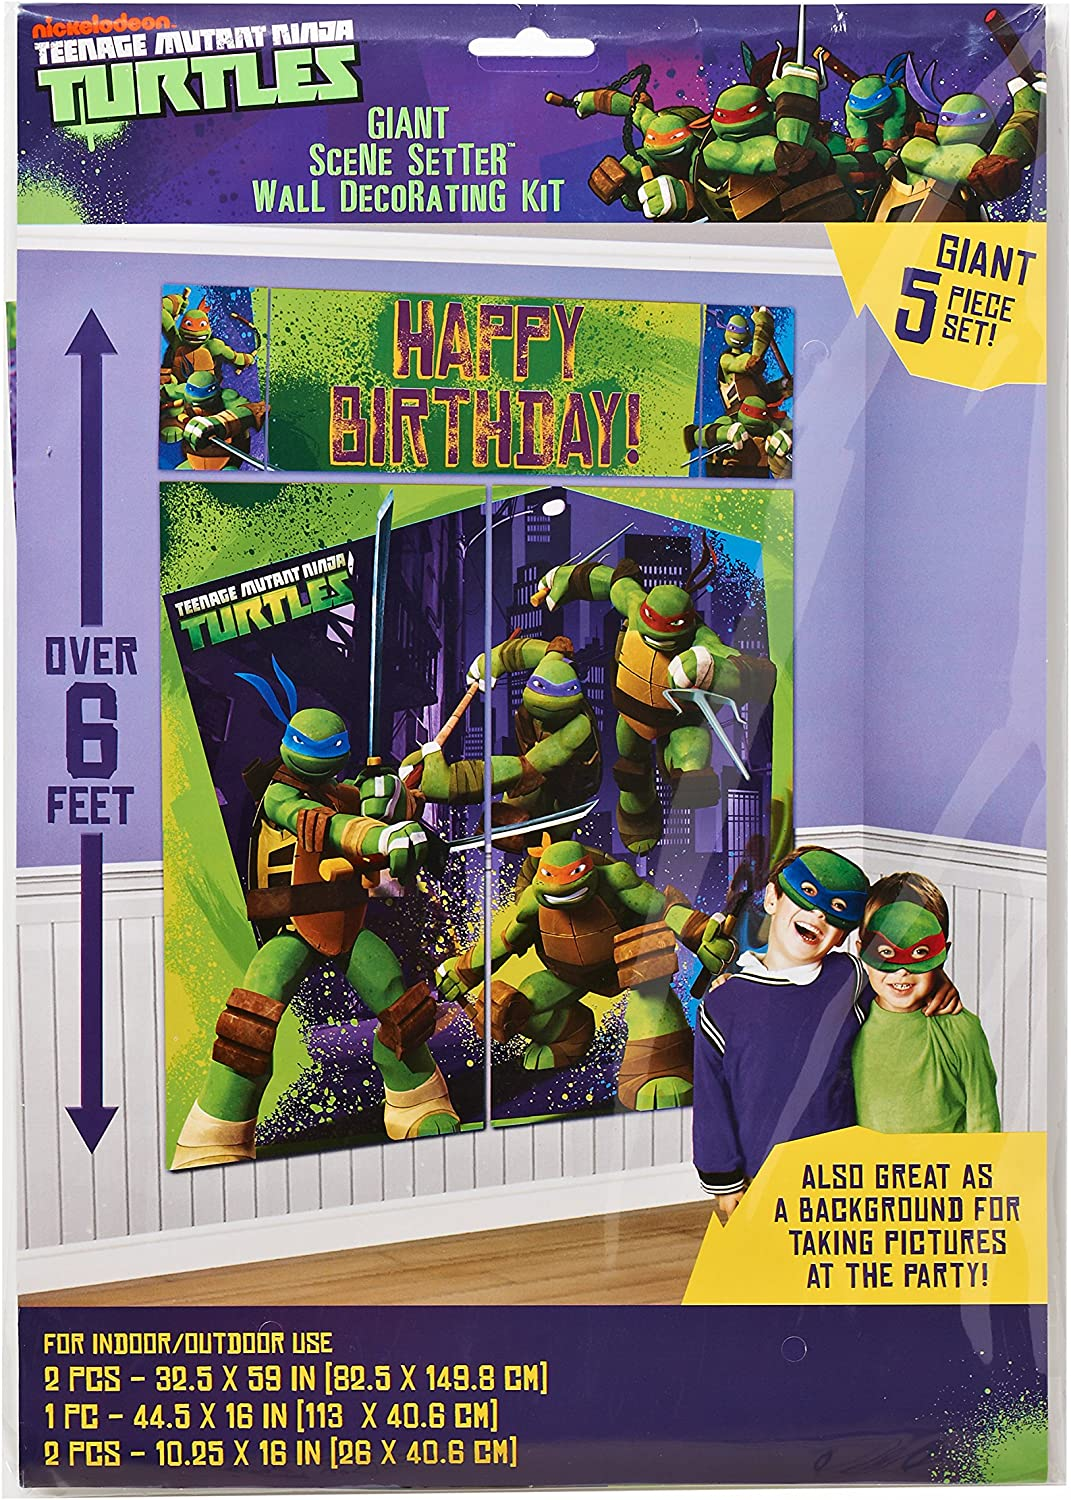 Amazon.com: American Greetings Tortuga Ninja Mutante ...